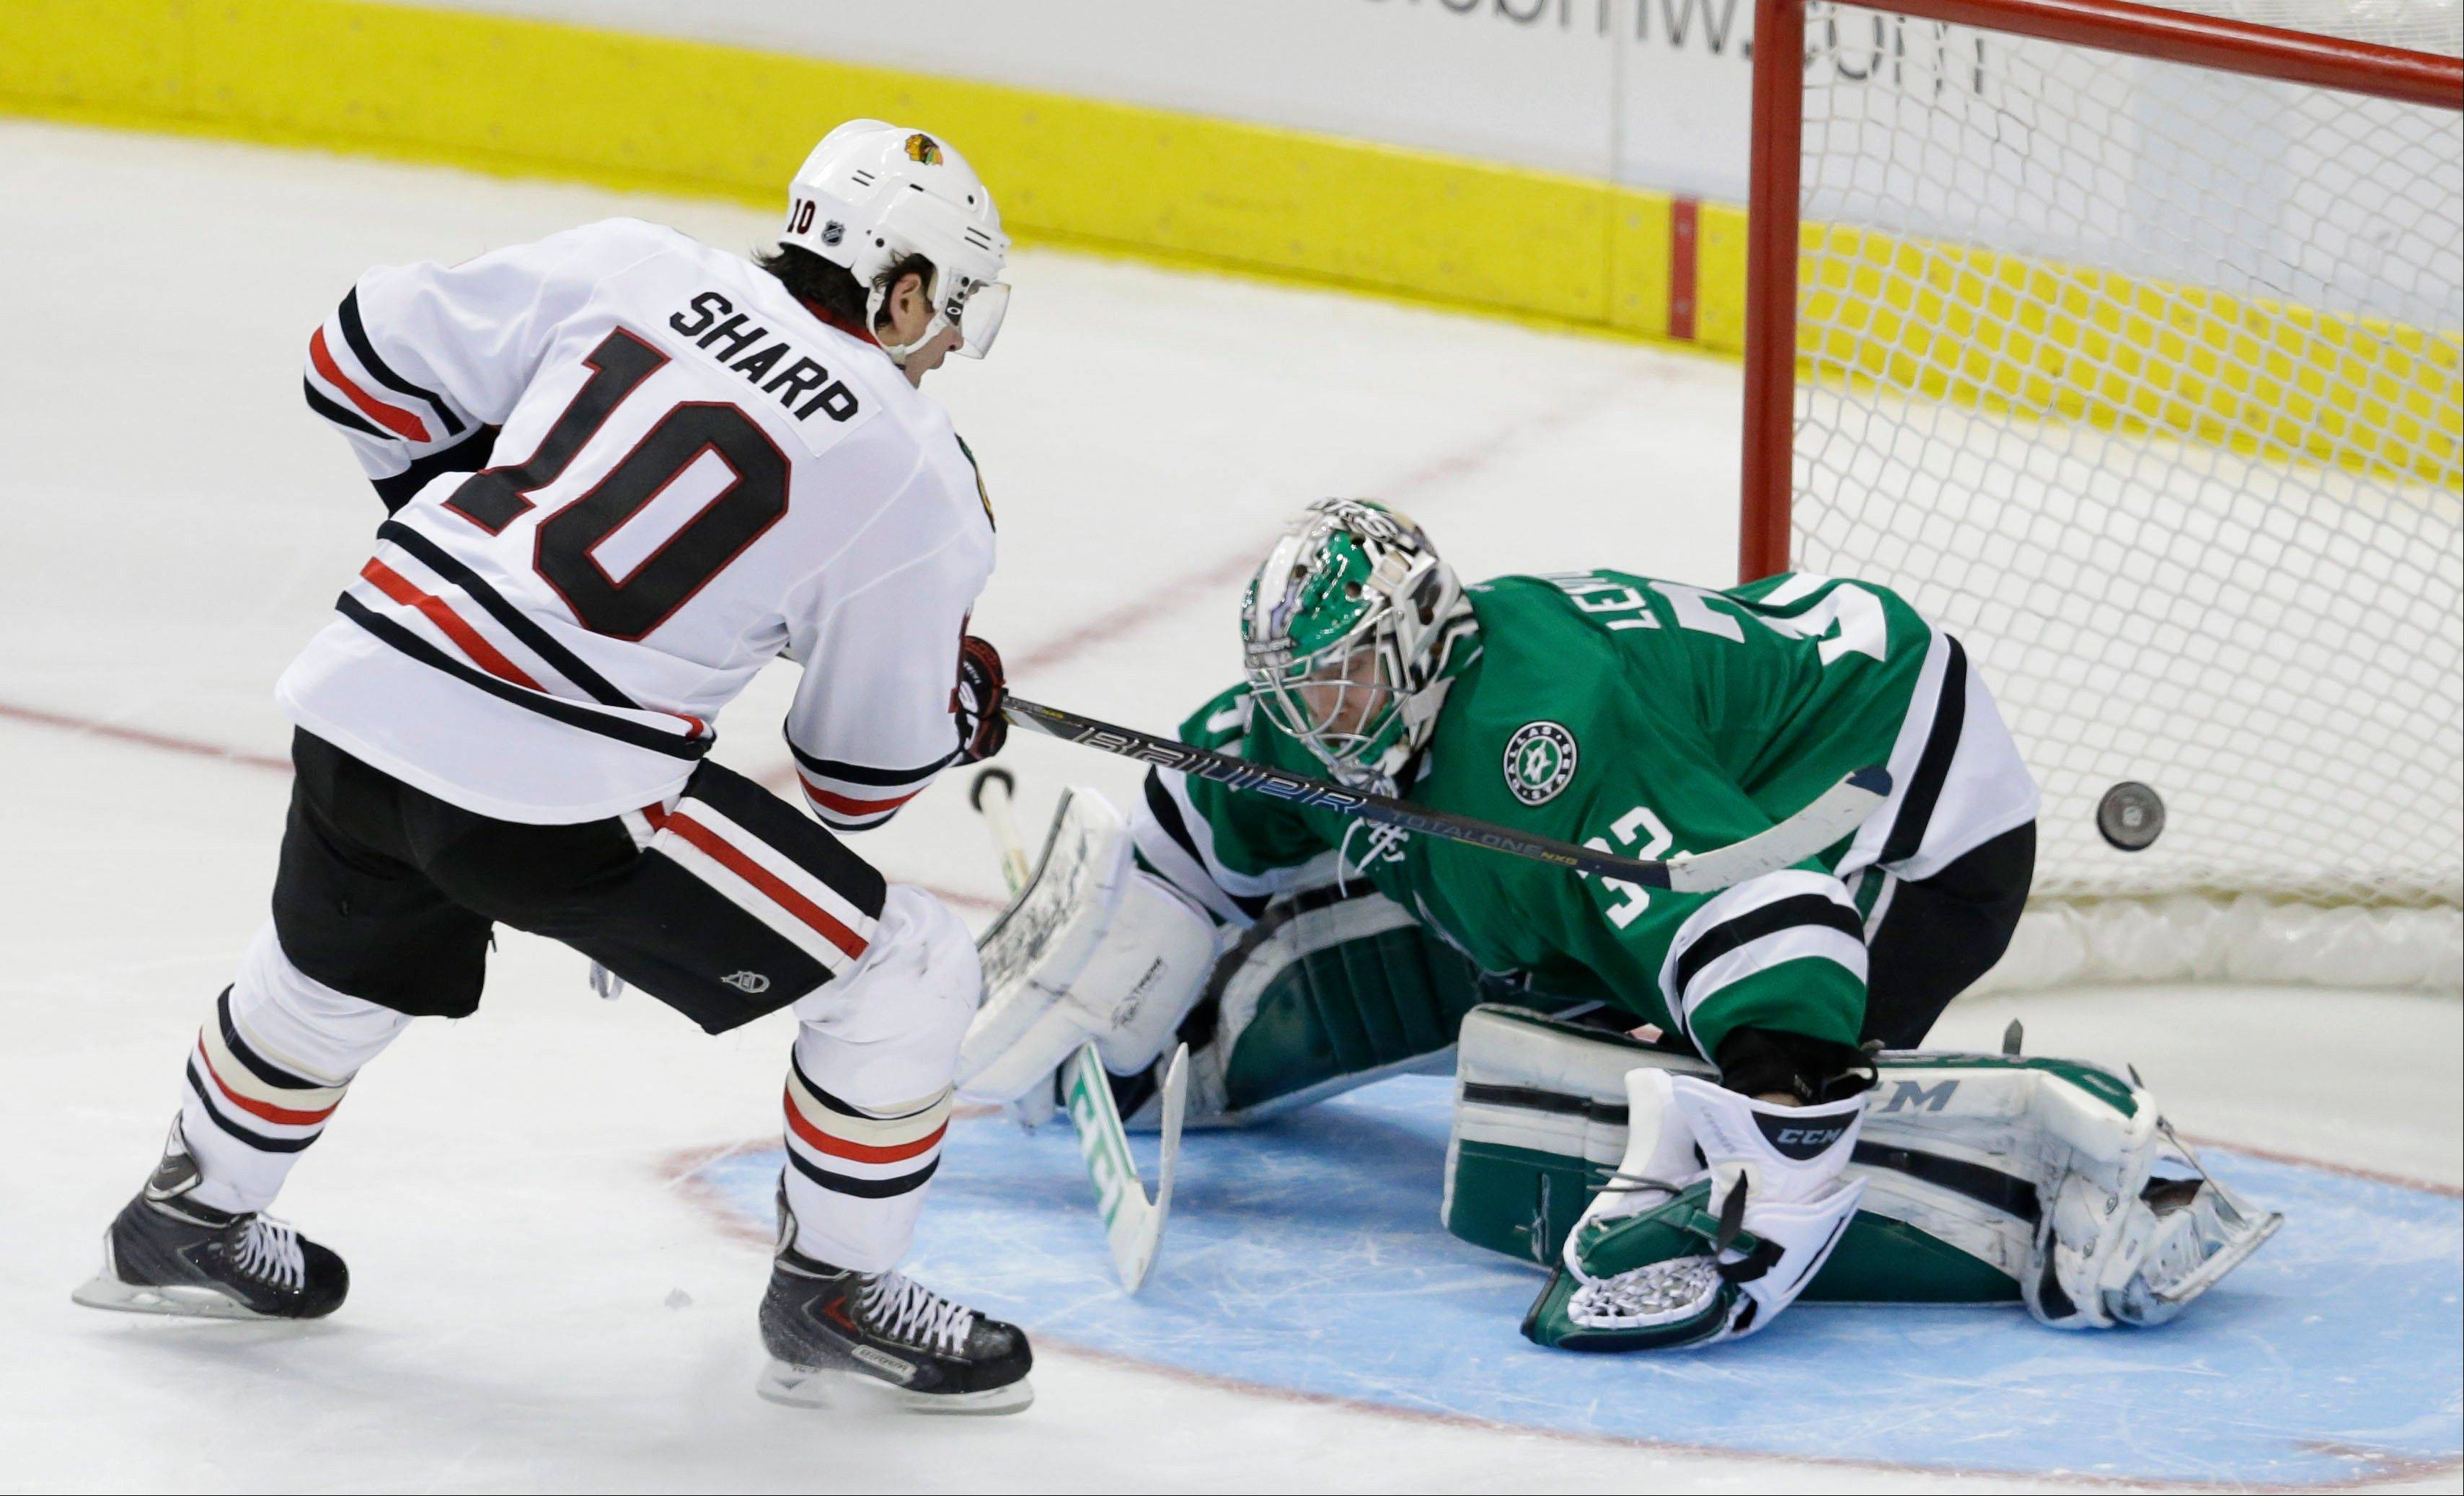 The Blackhawks' Patrick Sharp beats Stars goalie Kari Lehtonen (32) during a shootout Friday in Dallas.